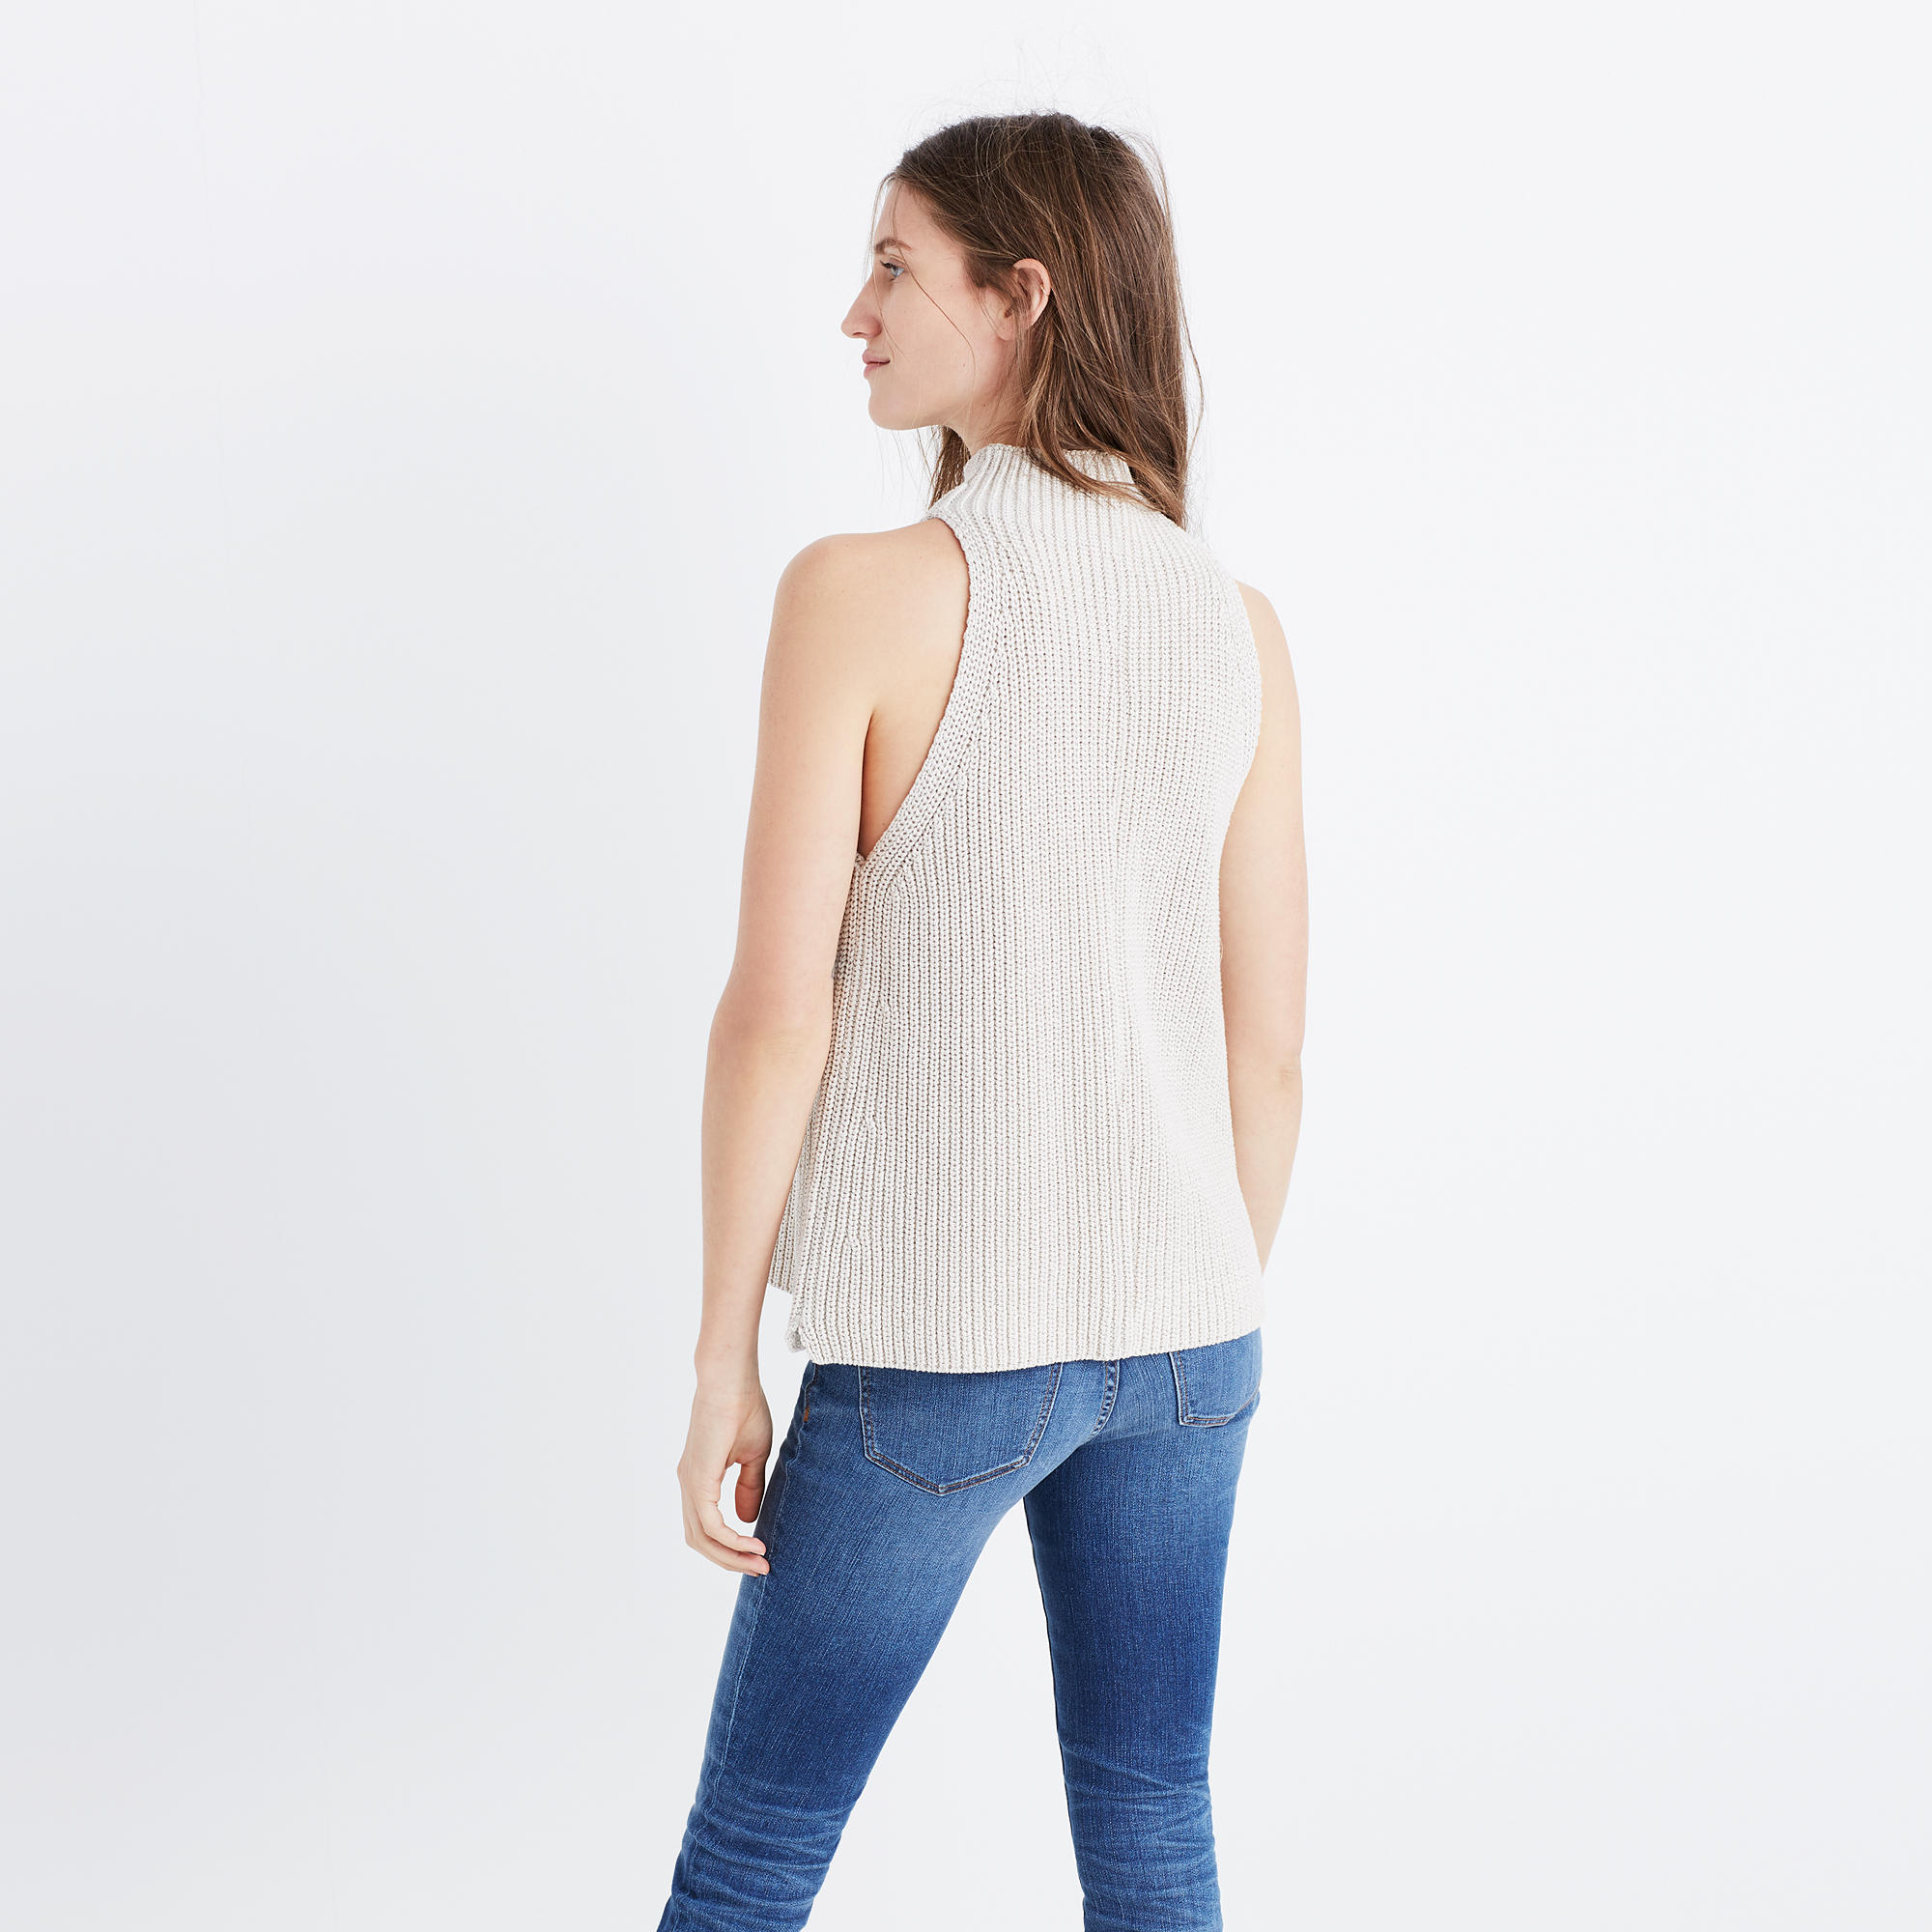 Mockneck Sweater-Vest : sleeveless & short sleeve | Madewell